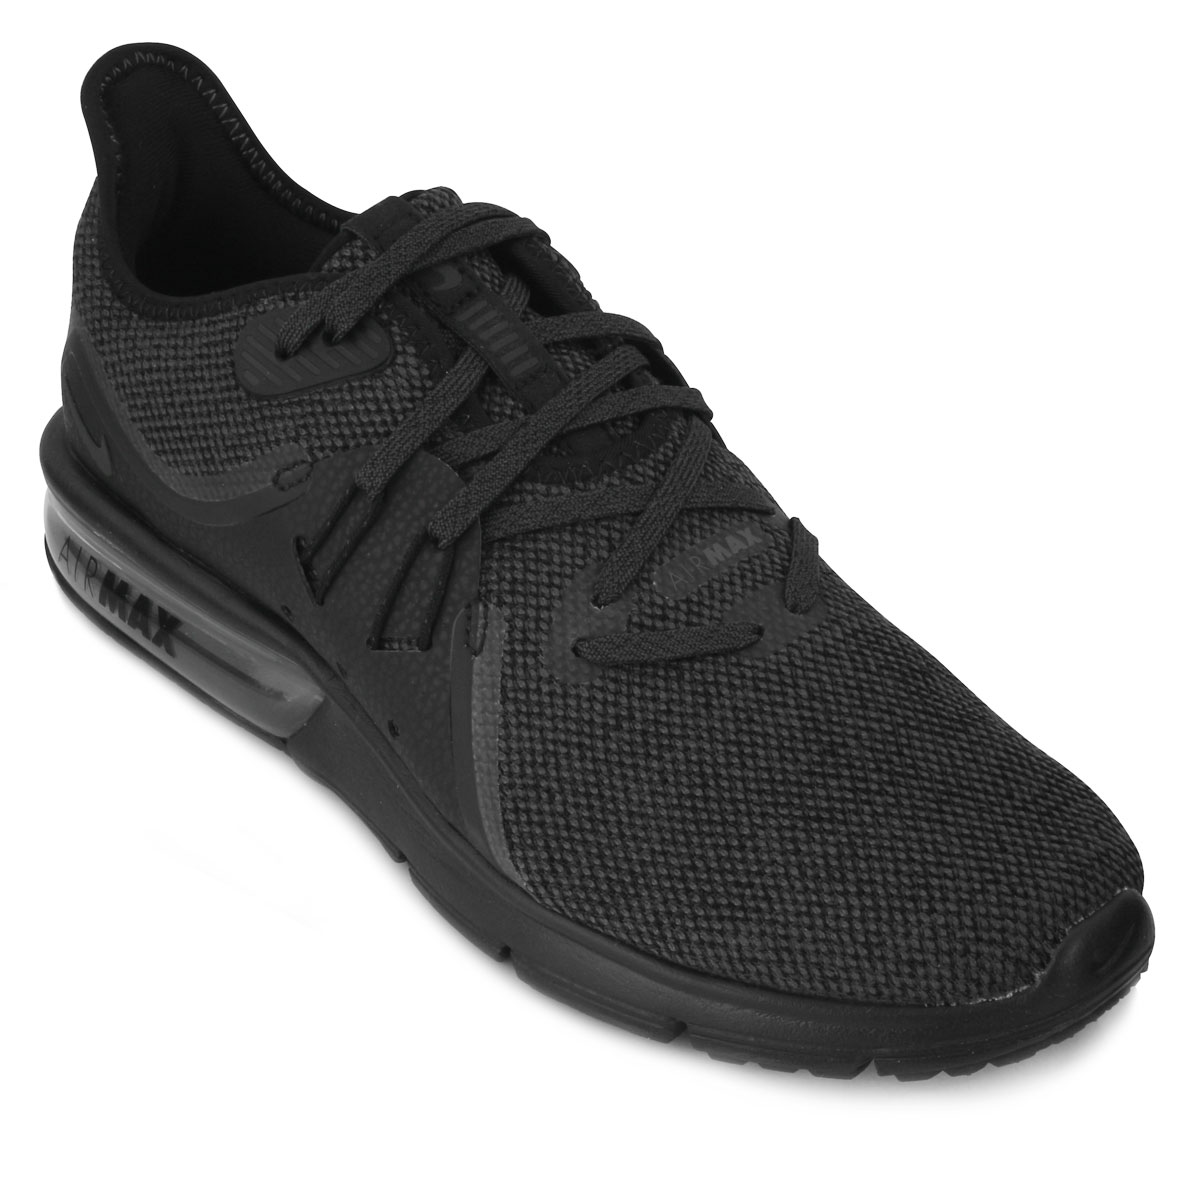 Tênis Nike Air Max Sequent 3 NK18 Preto  feebfeed2f4c9